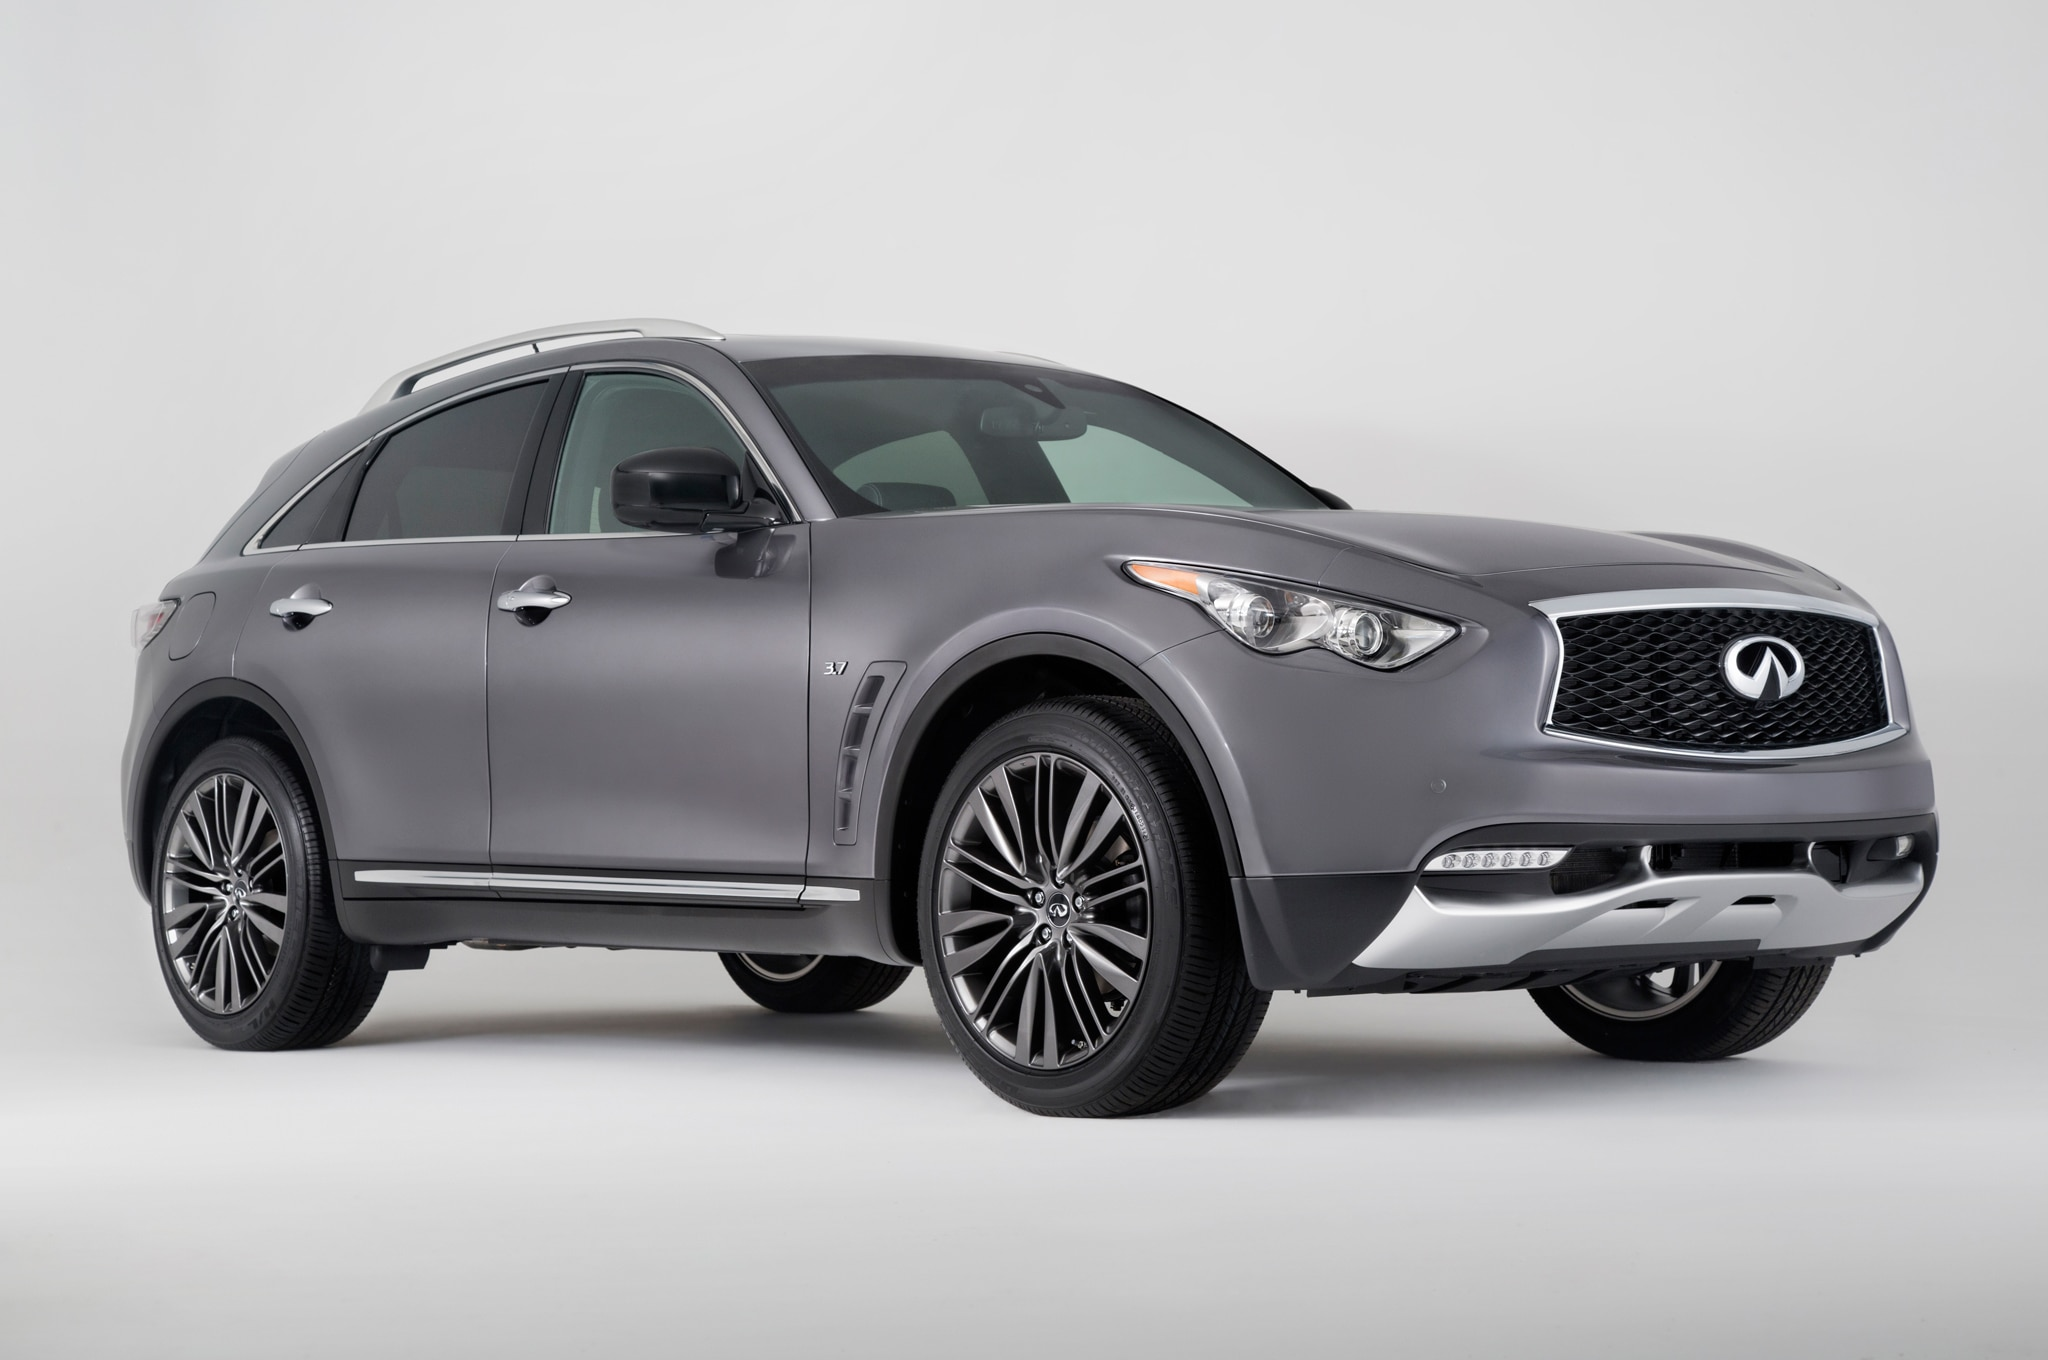 2018 infiniti fx 70. exellent 2018 infiniti qx70 discontinued for 2018 5 advertisement to skip 15 inside 2018 infiniti fx 70 t